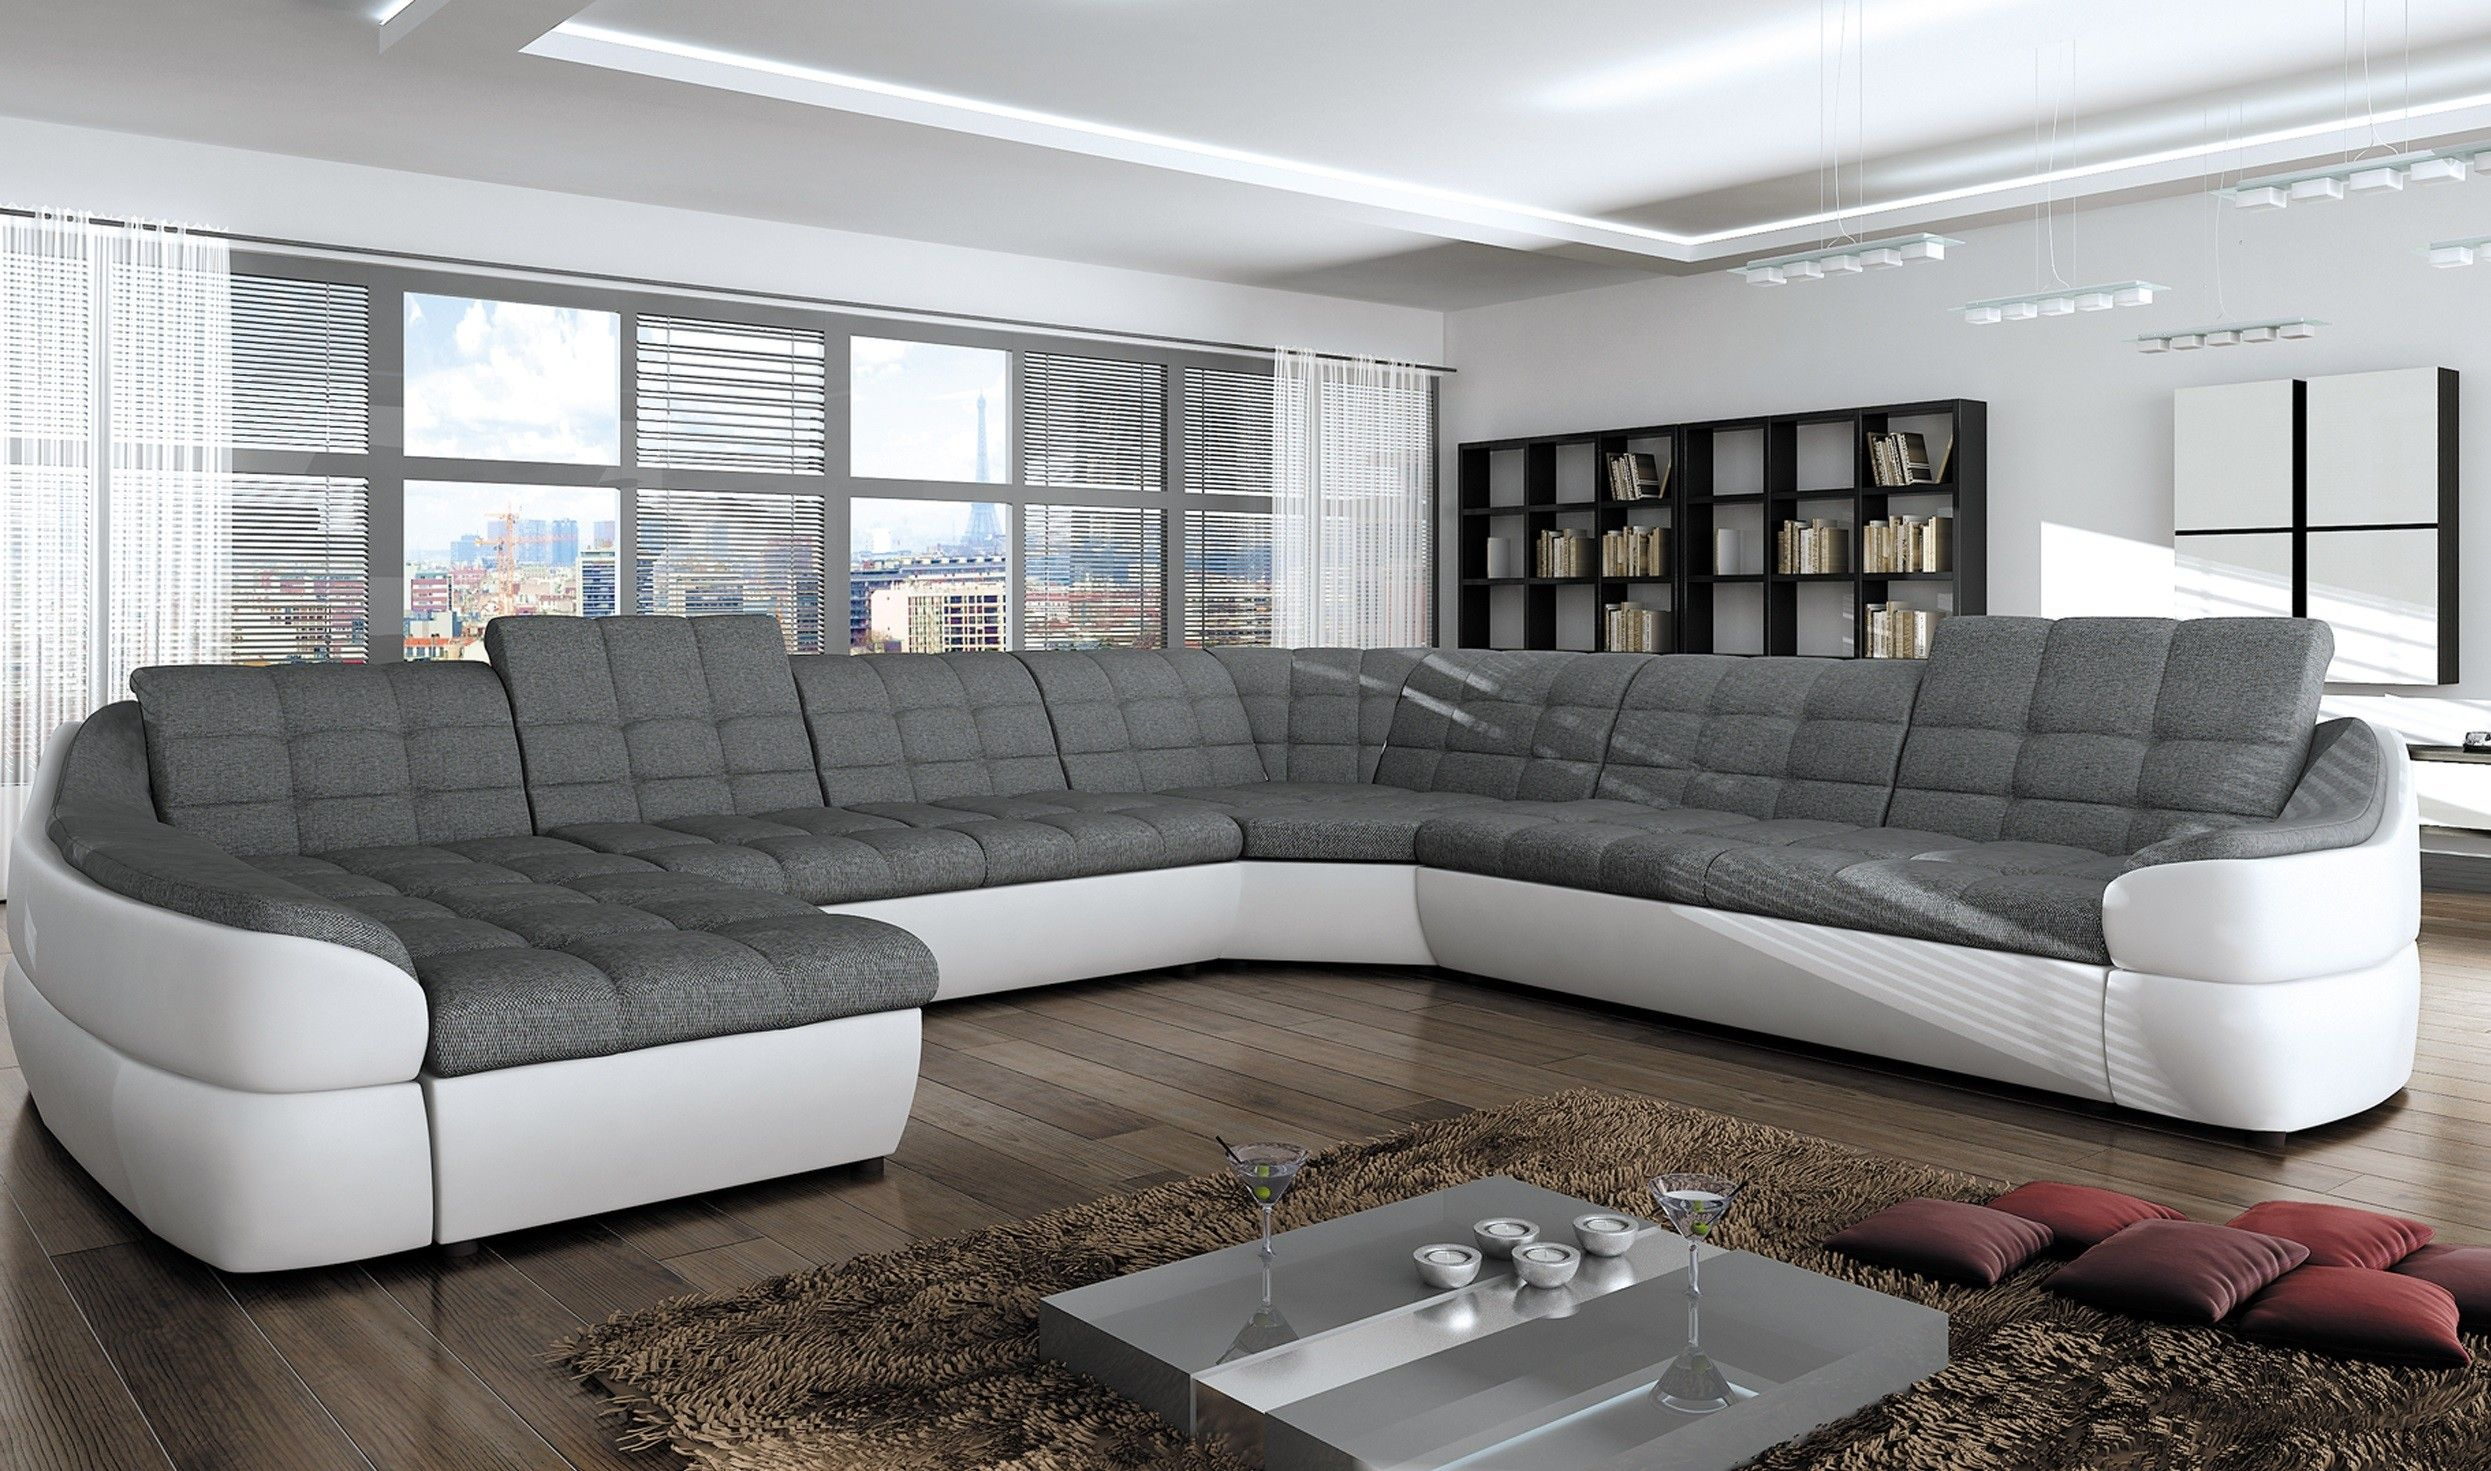 Afficher l\'image d\'origine | Modern sofa | Pinterest | Modern chairs ...